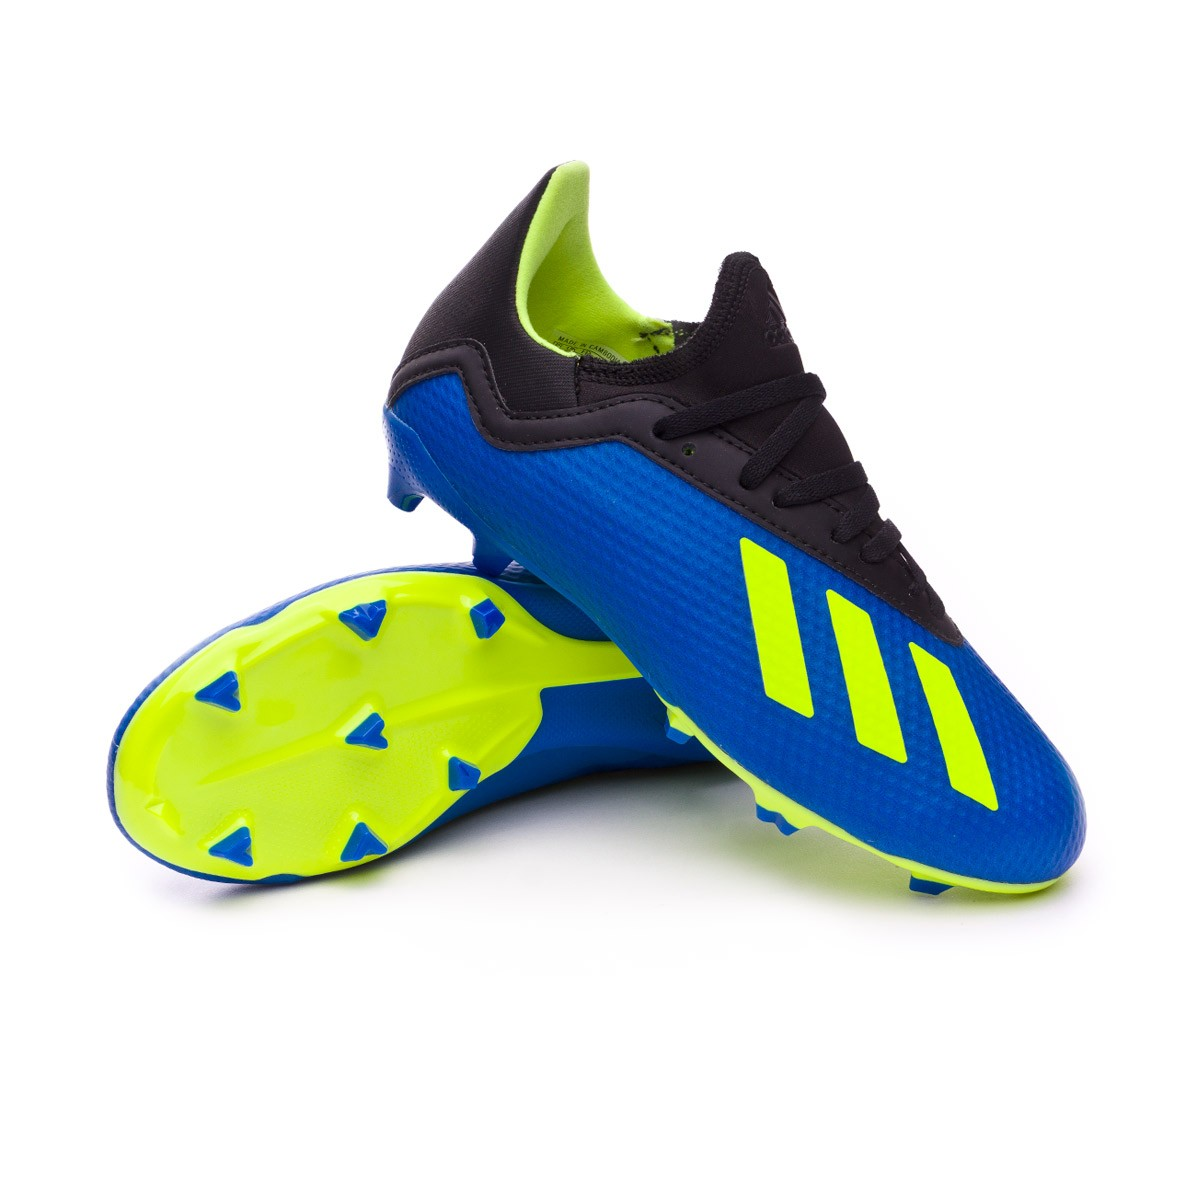 48a2cd76d013 Football Boots adidas Kids X 18.3 FG Foot blue-Solar yellow-Black ...